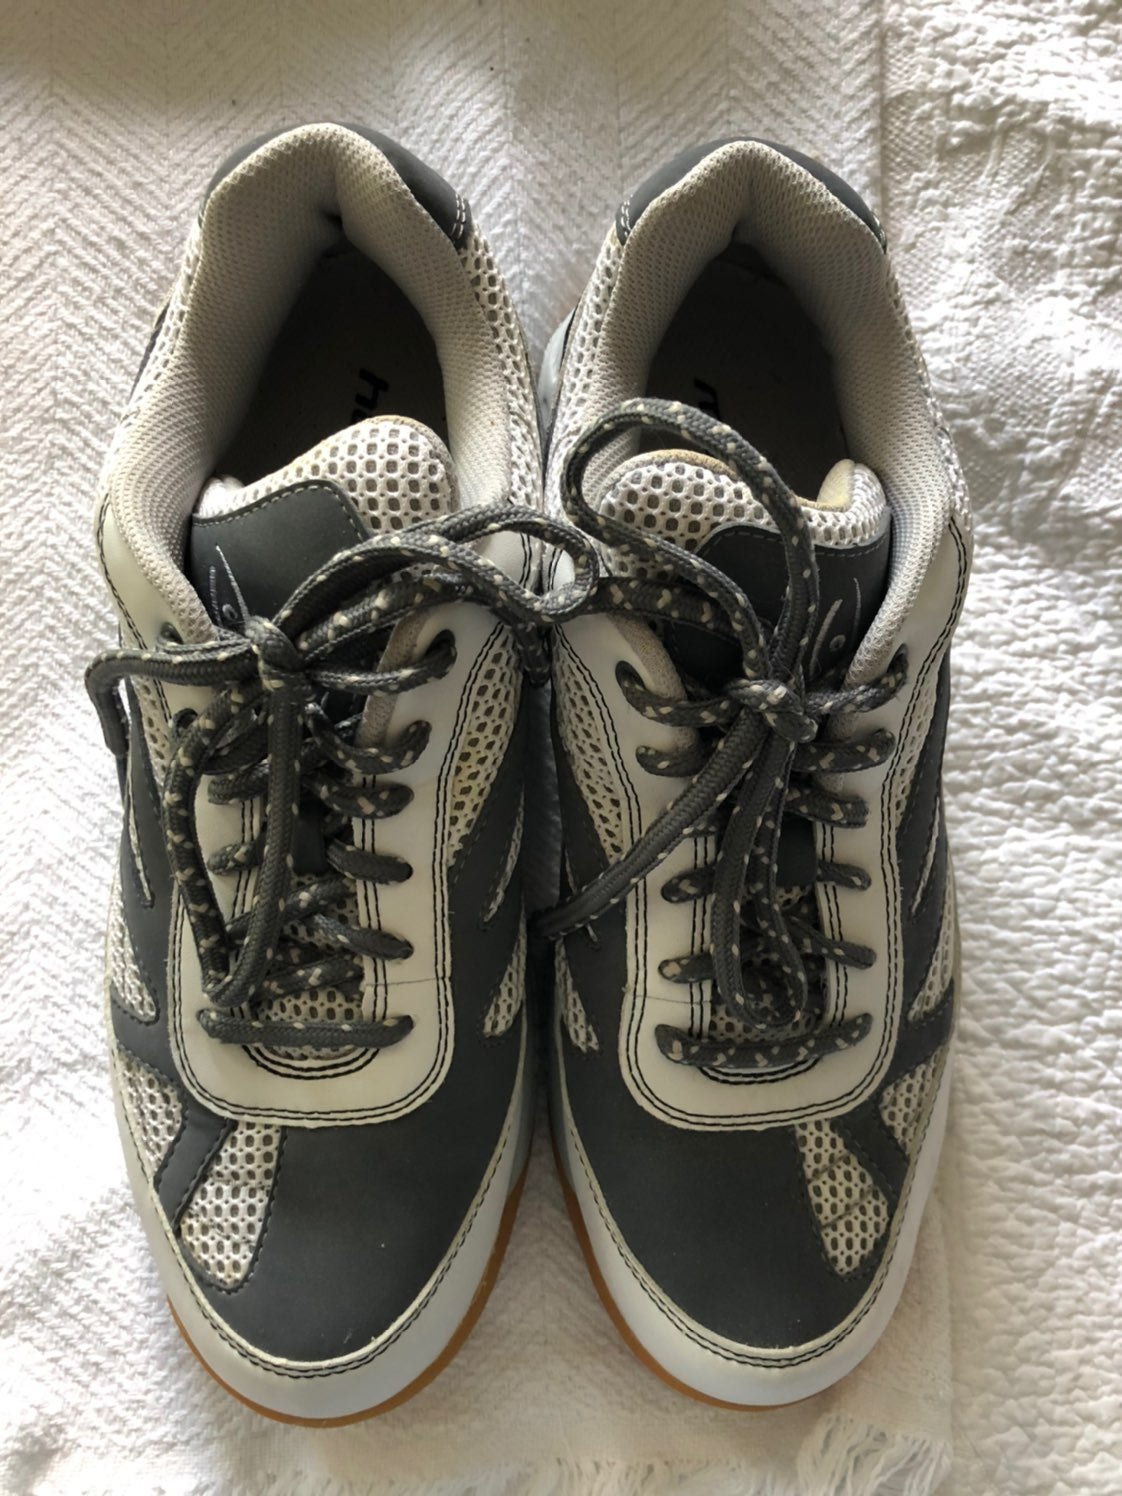 Harrow Court Shoes size 8